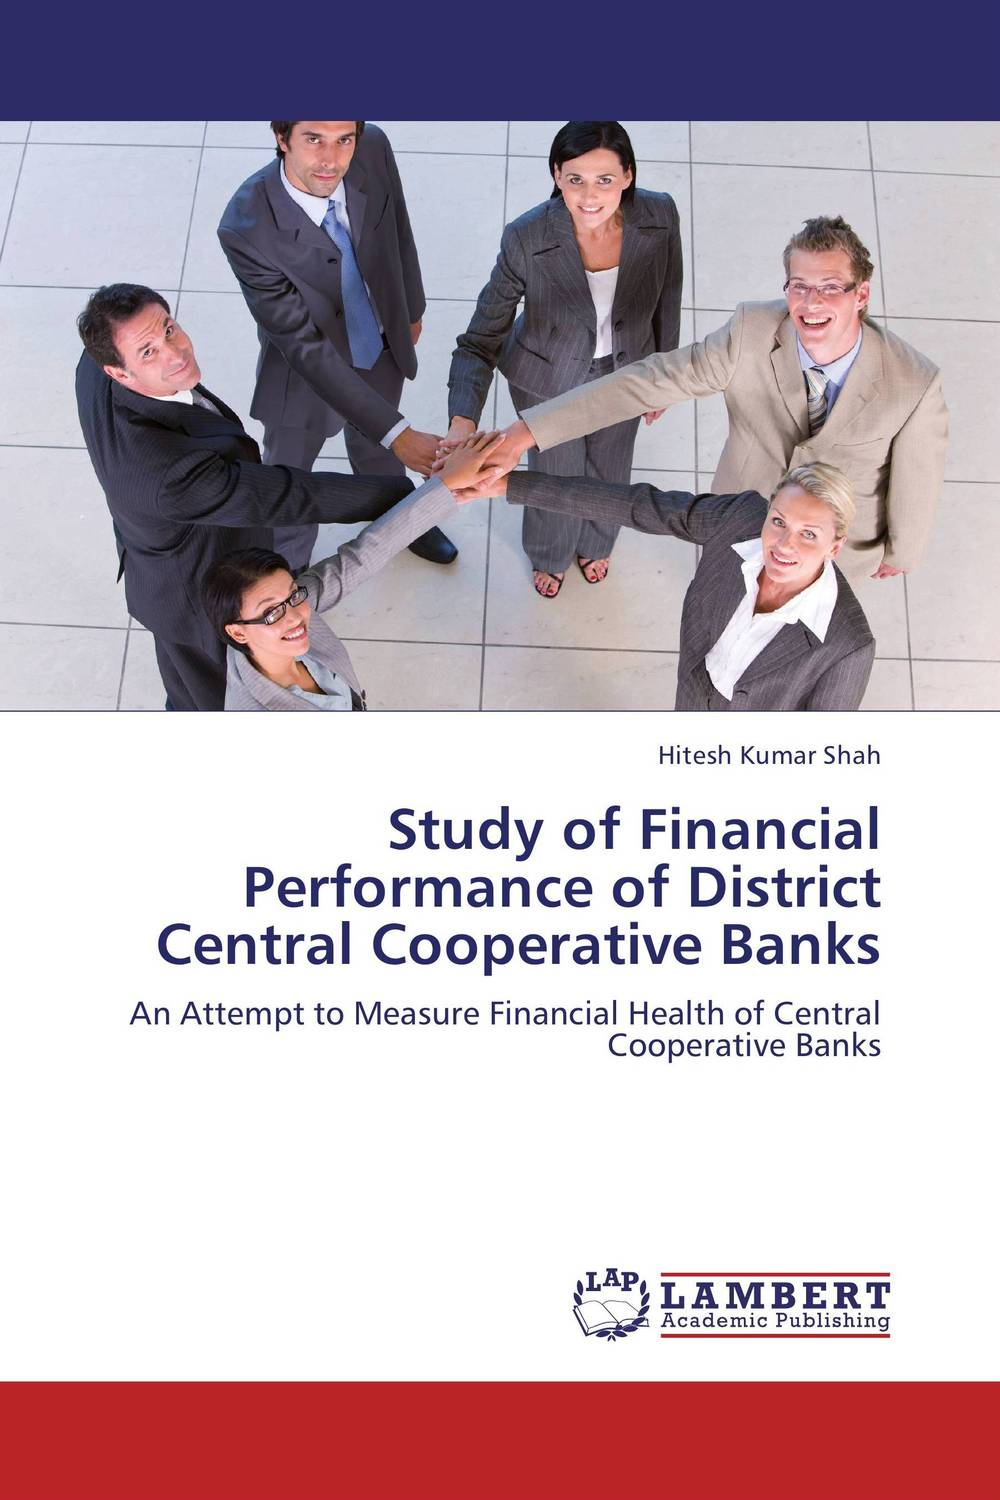 Study of Financial Performance of District Central Cooperative Banks fabian amtenbrink the democratic accountability of central banks